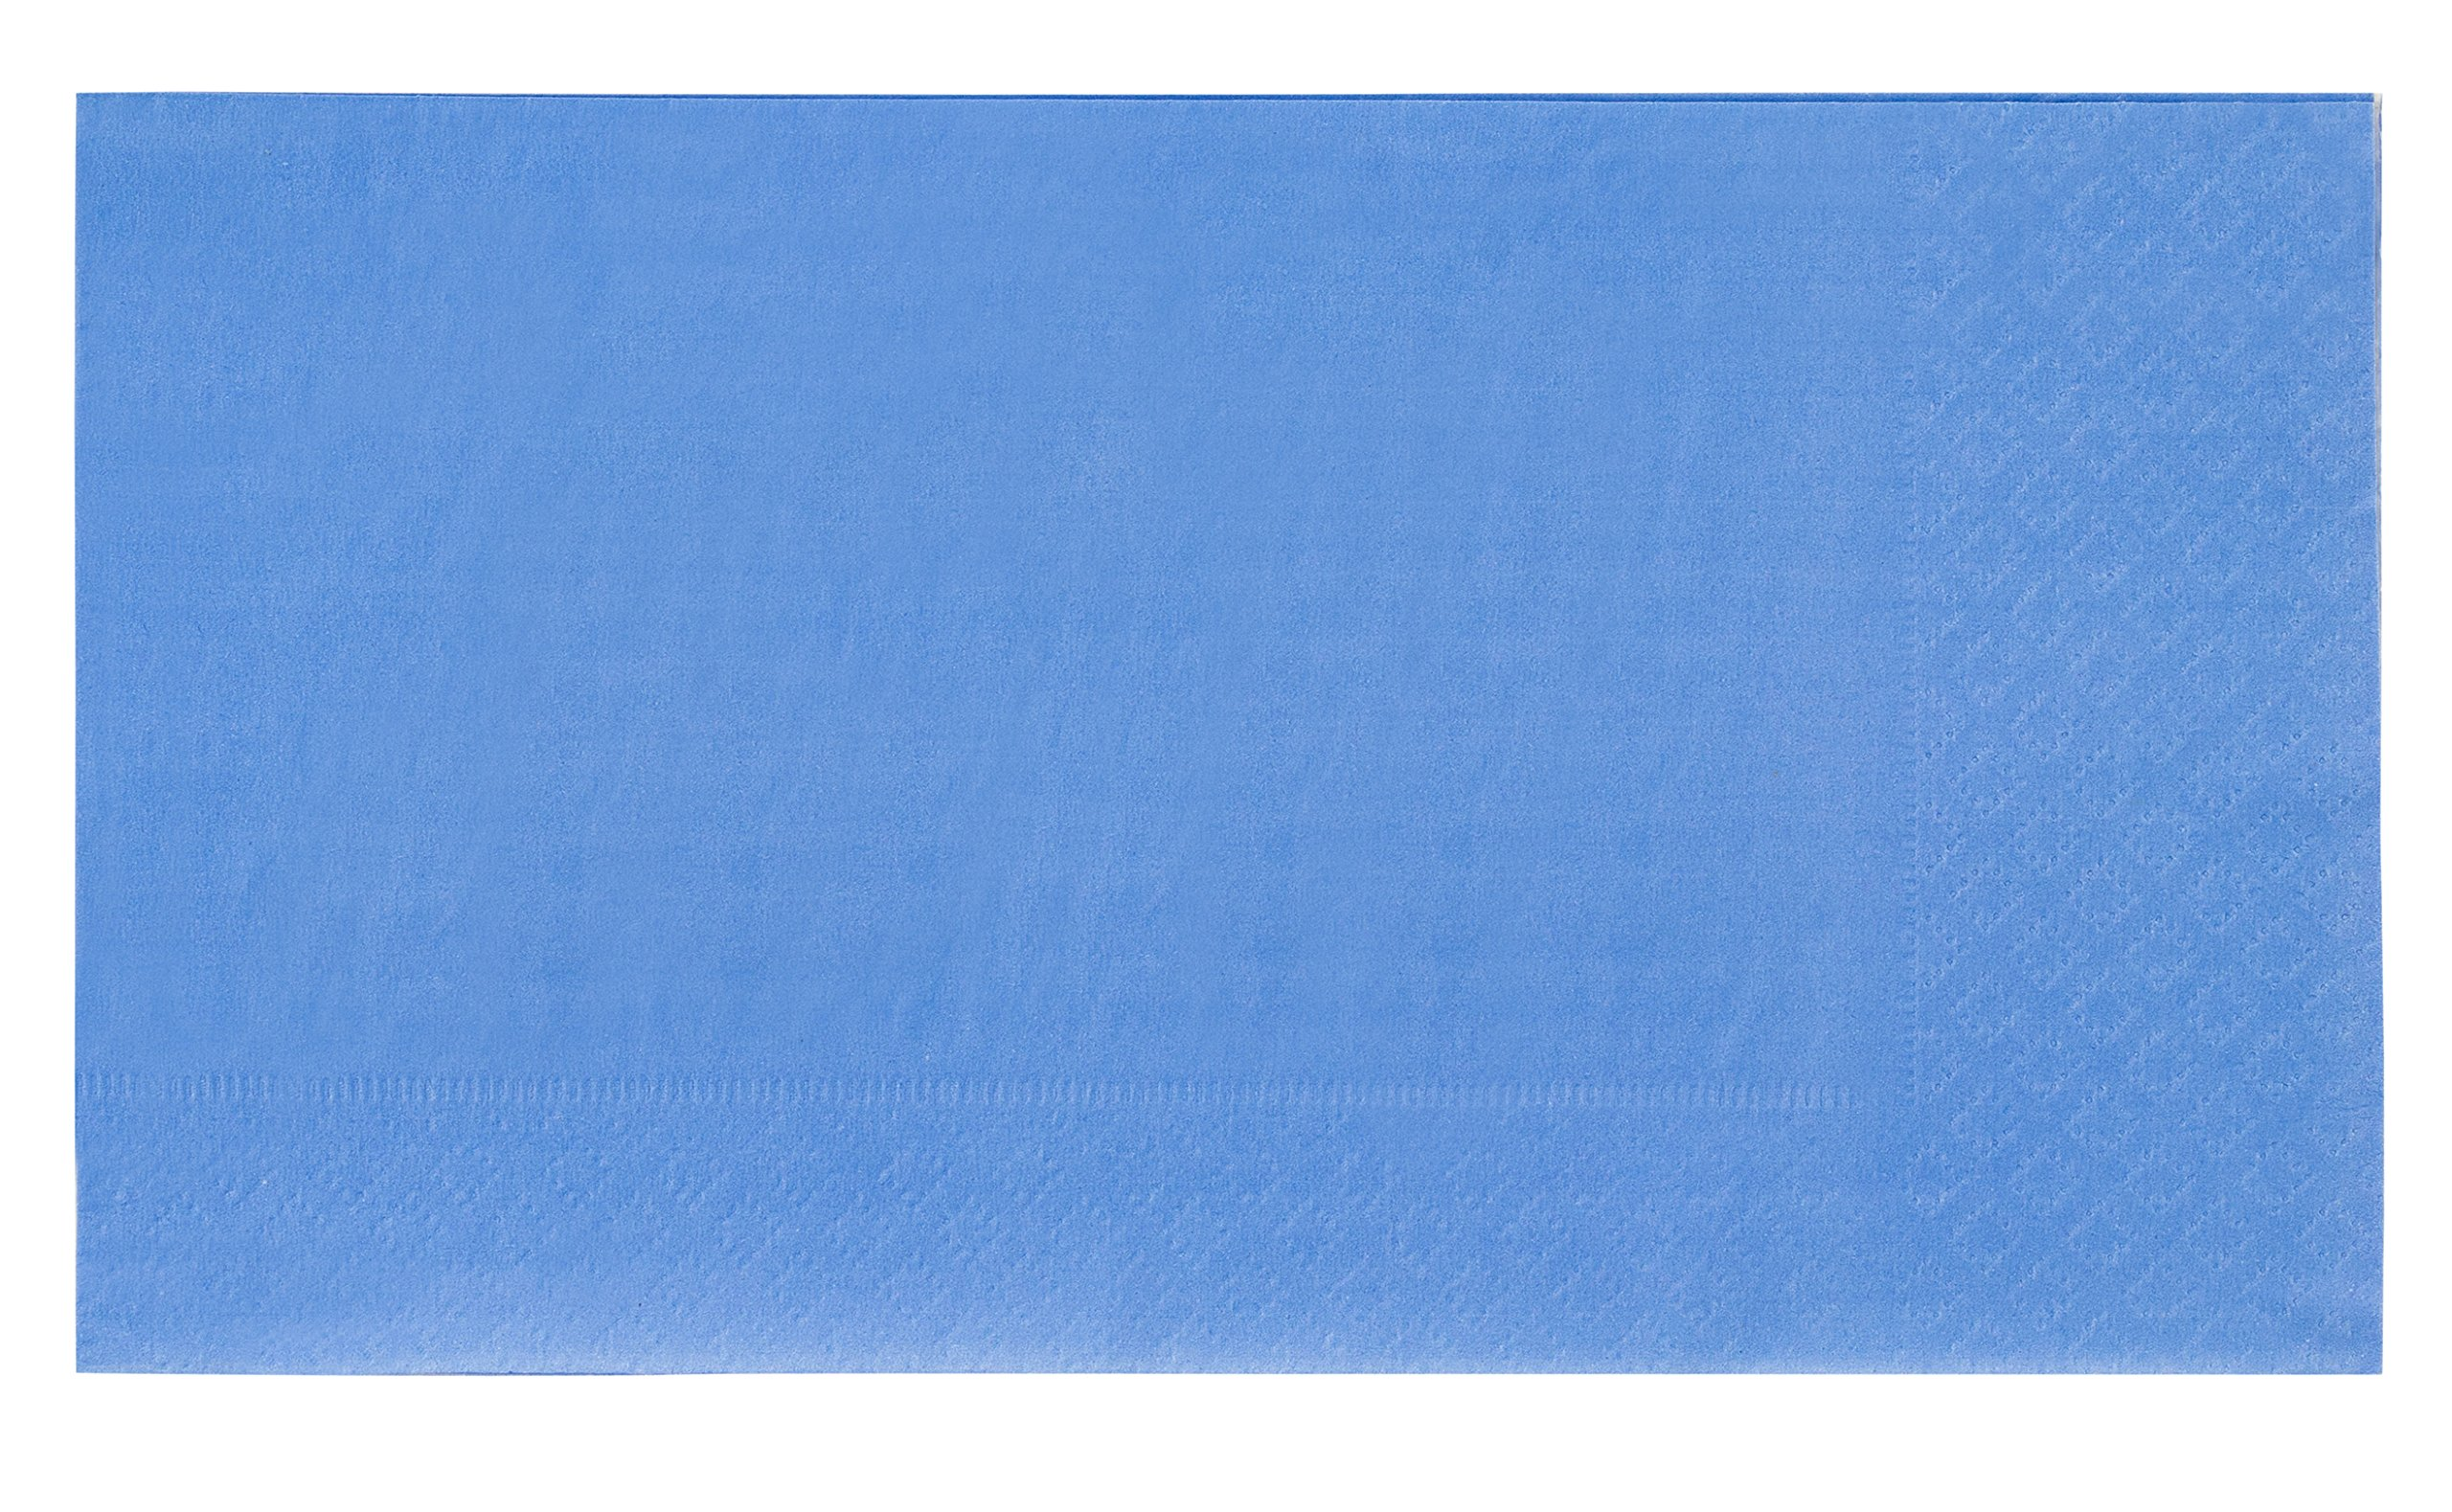 Paper Napkins - 120-Pack Disposable Paper Napkins - 2-Ply Absorbent Napkins for Everyday Kitchen, Weddings, Birthday Parties, Blue, 15.5 x 13 Inches